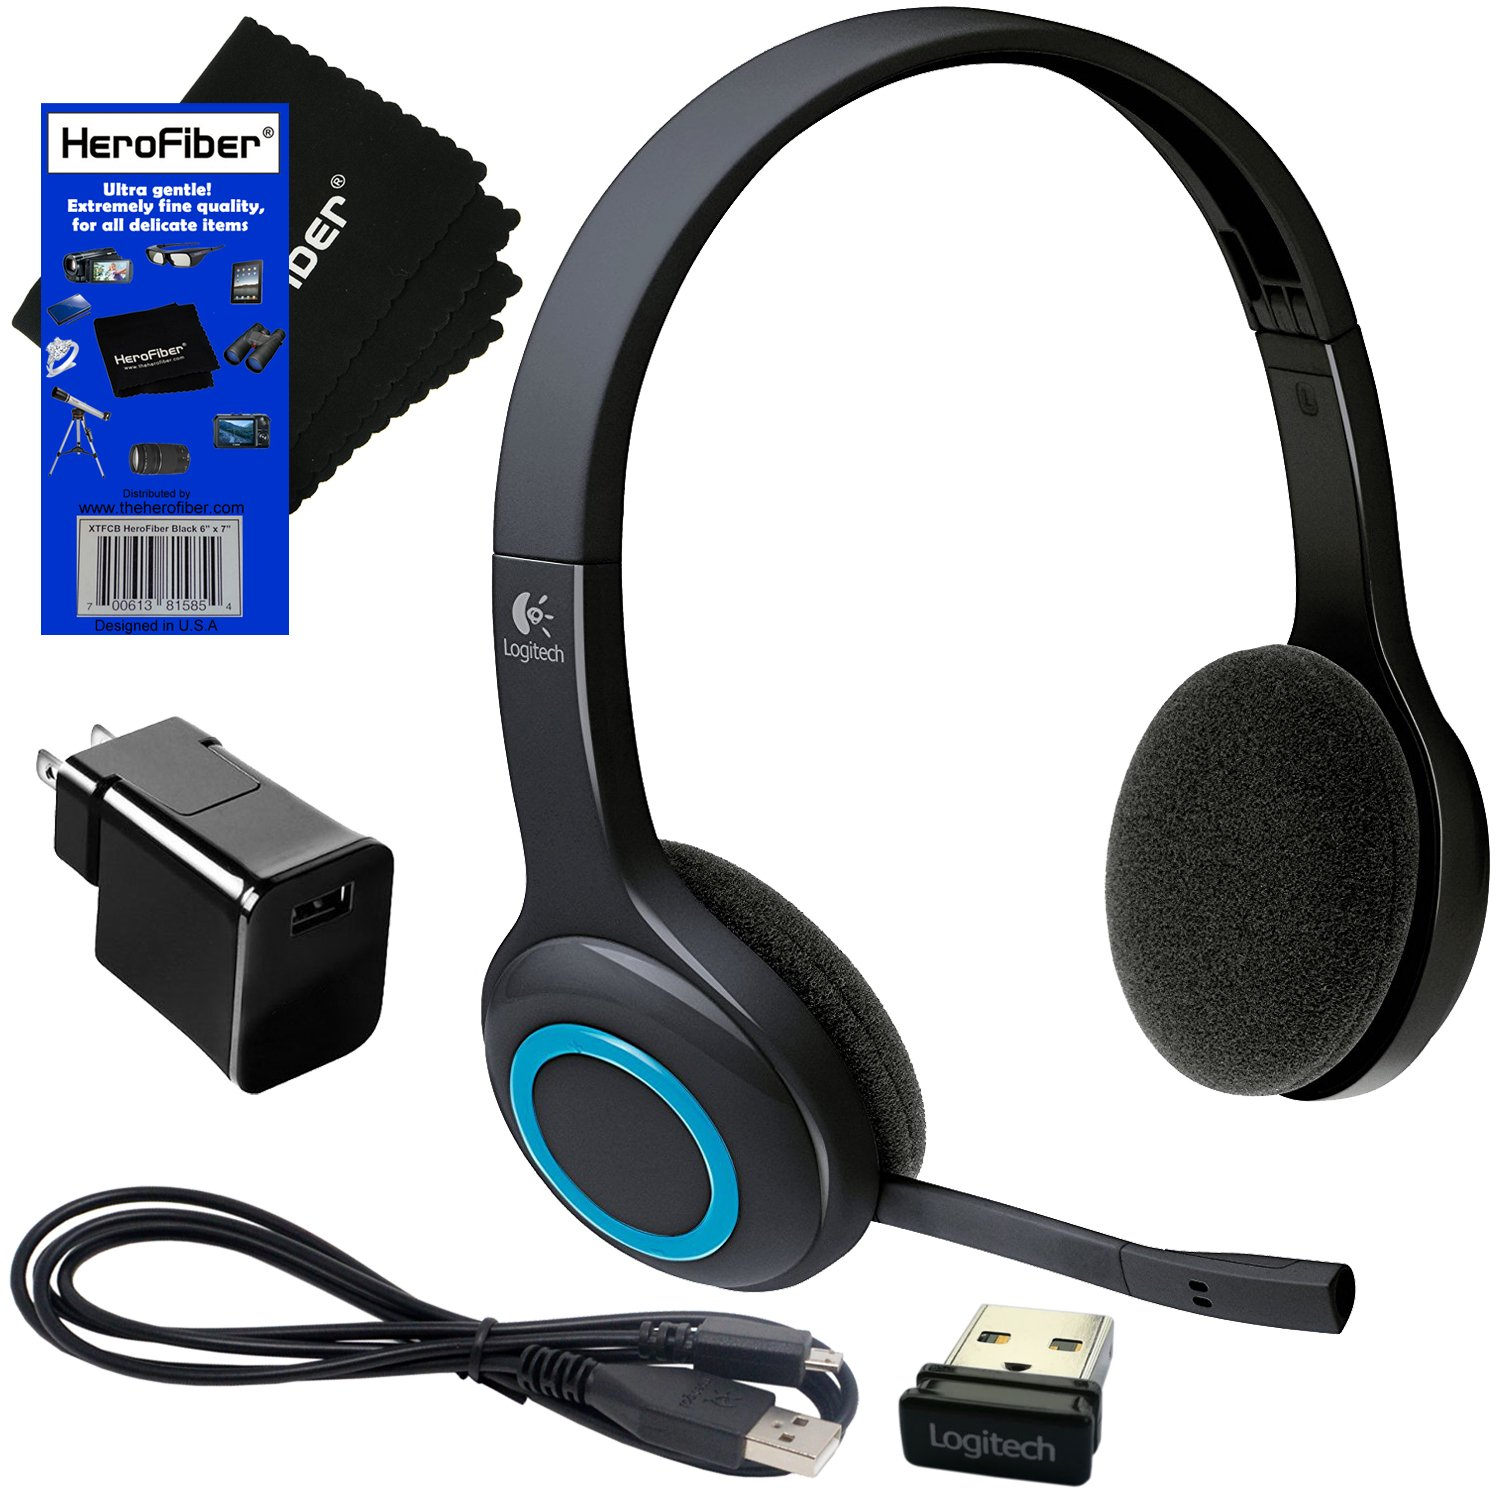 Logitech H600 Fold-and-Go wireless Headset + Receiver + USB Cable with Wall Adapter Charger + HeroFiber Ultra Gentle Cleaning Cloth by HeroFiber